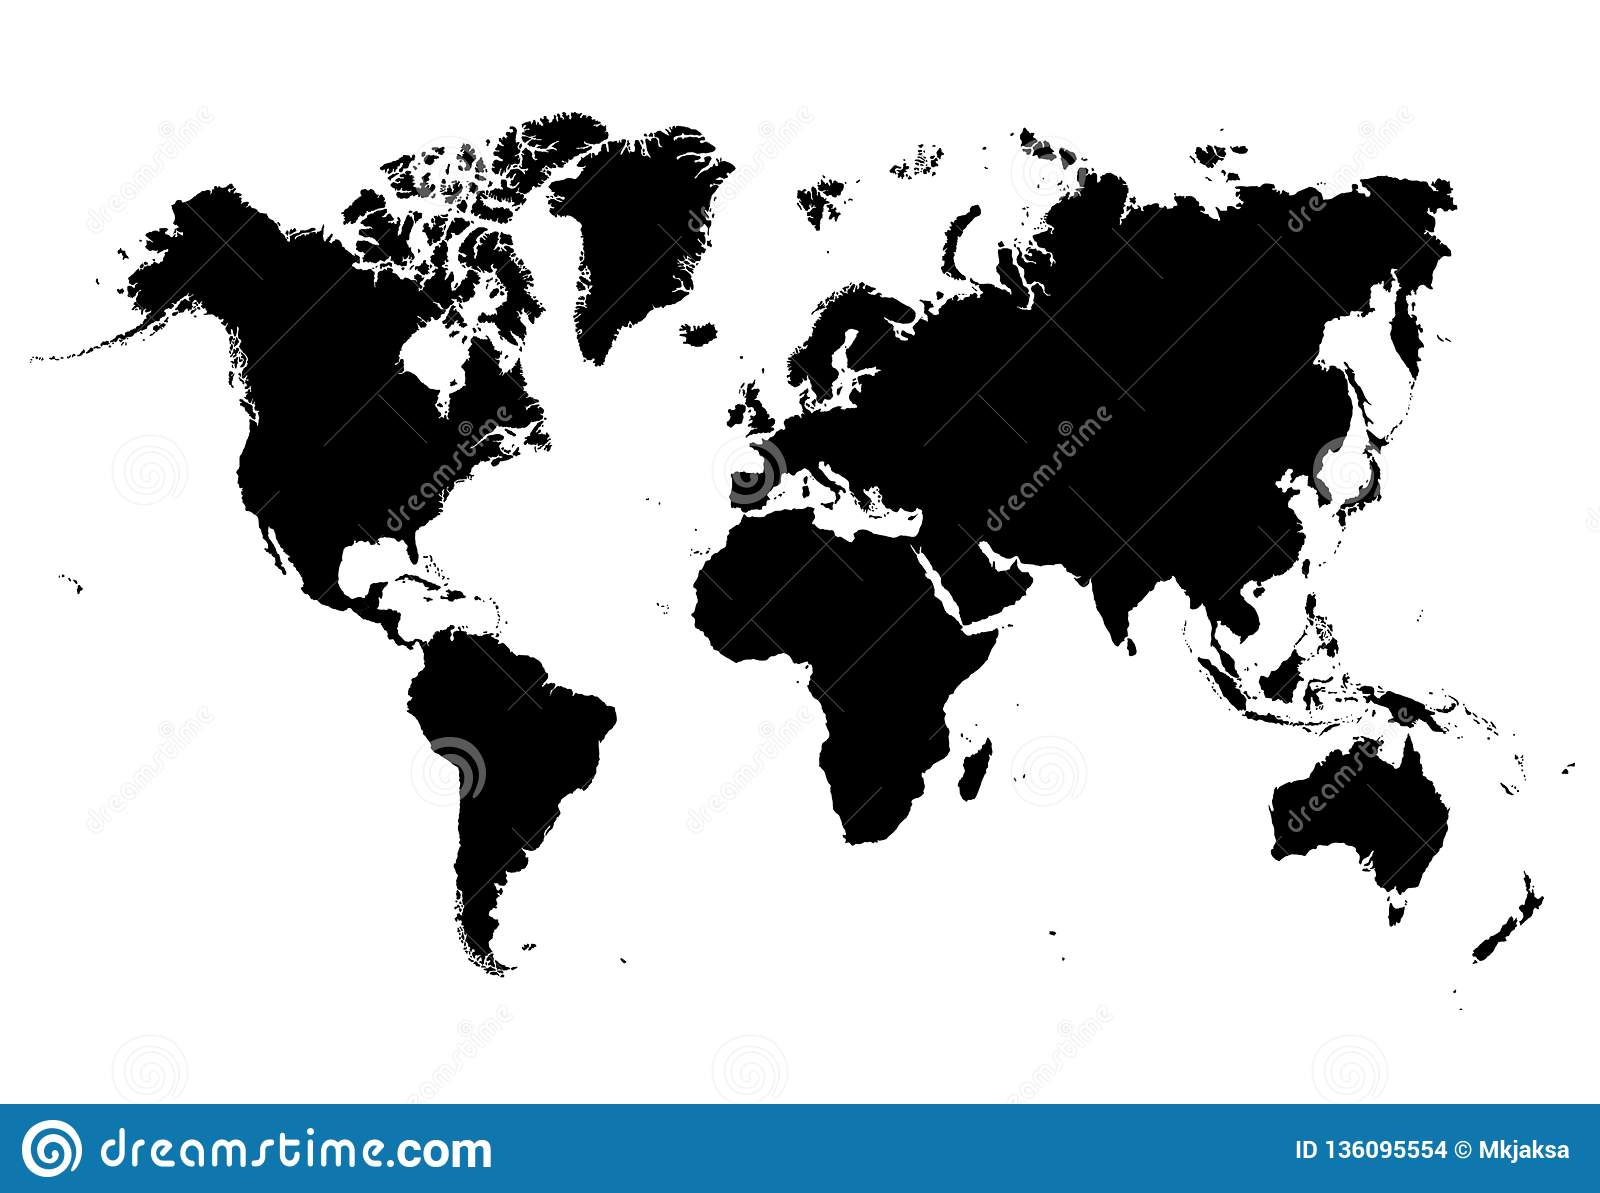 Black And White Very Detailed Map Of The Whole World. Stock Vector ...